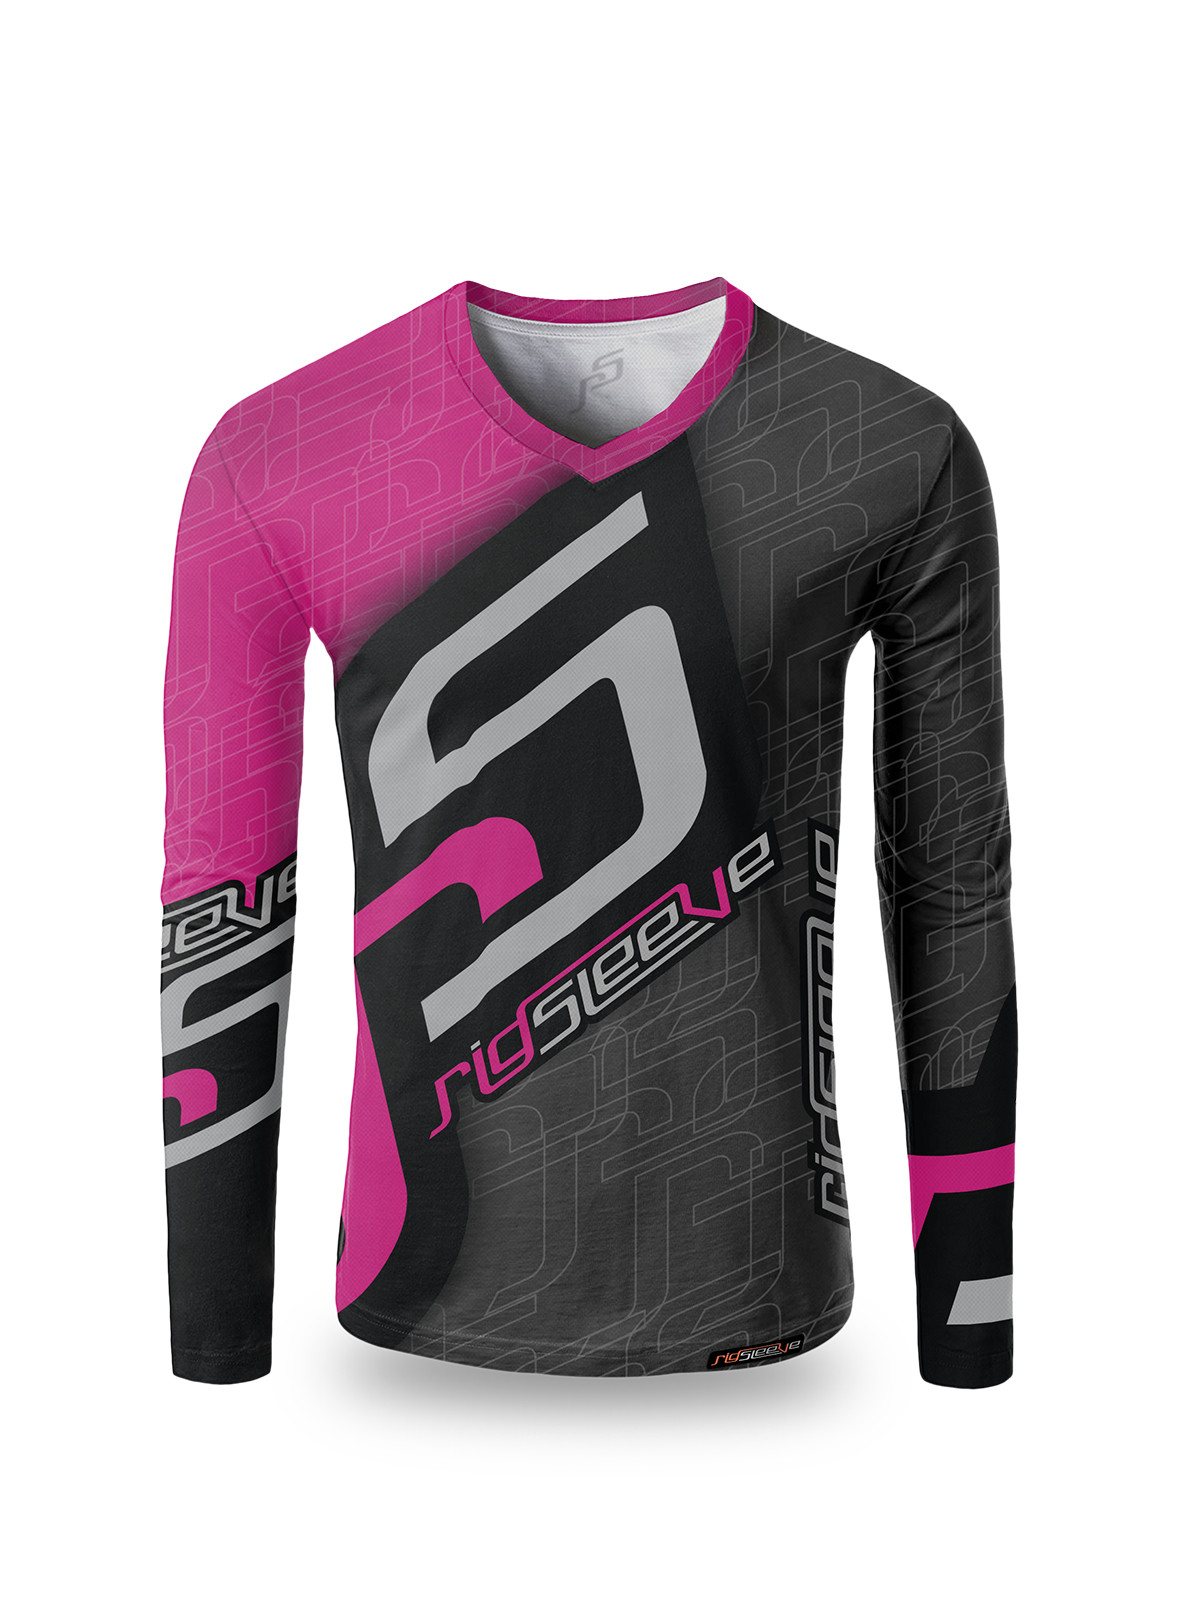 RigSleeve Pink Long Sleeve Jersey